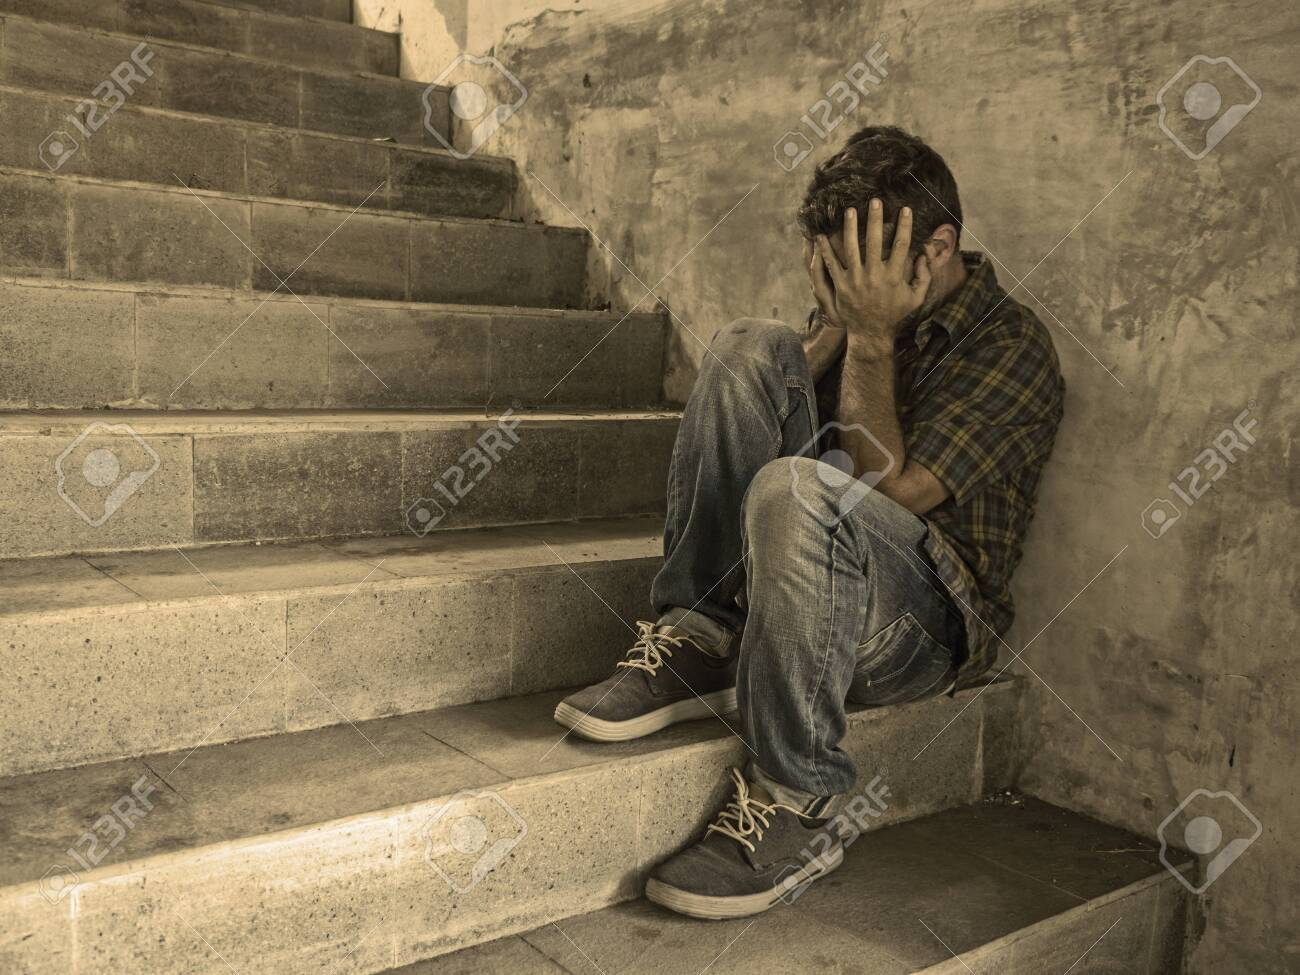 Dramatic Lifestyle Portrait Of Young Depressed And Sad Man Sitting Stock Photo Picture And Royalty Free Image Image 128822497